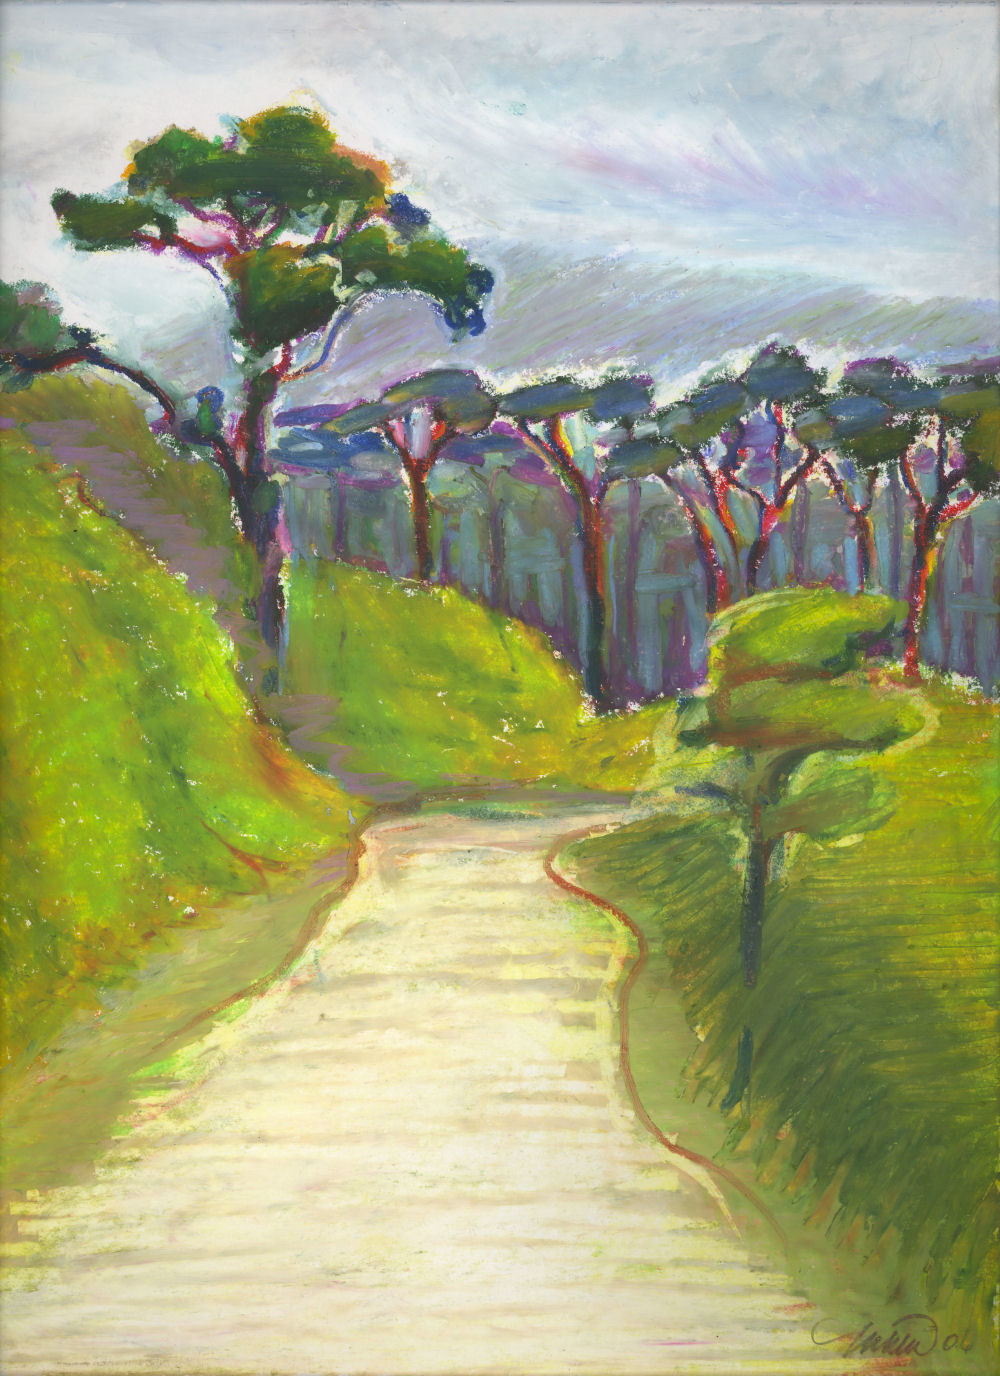 Lake Cote Forest Reserve, Costa Rica, 14 x 11 oil pastels on paper